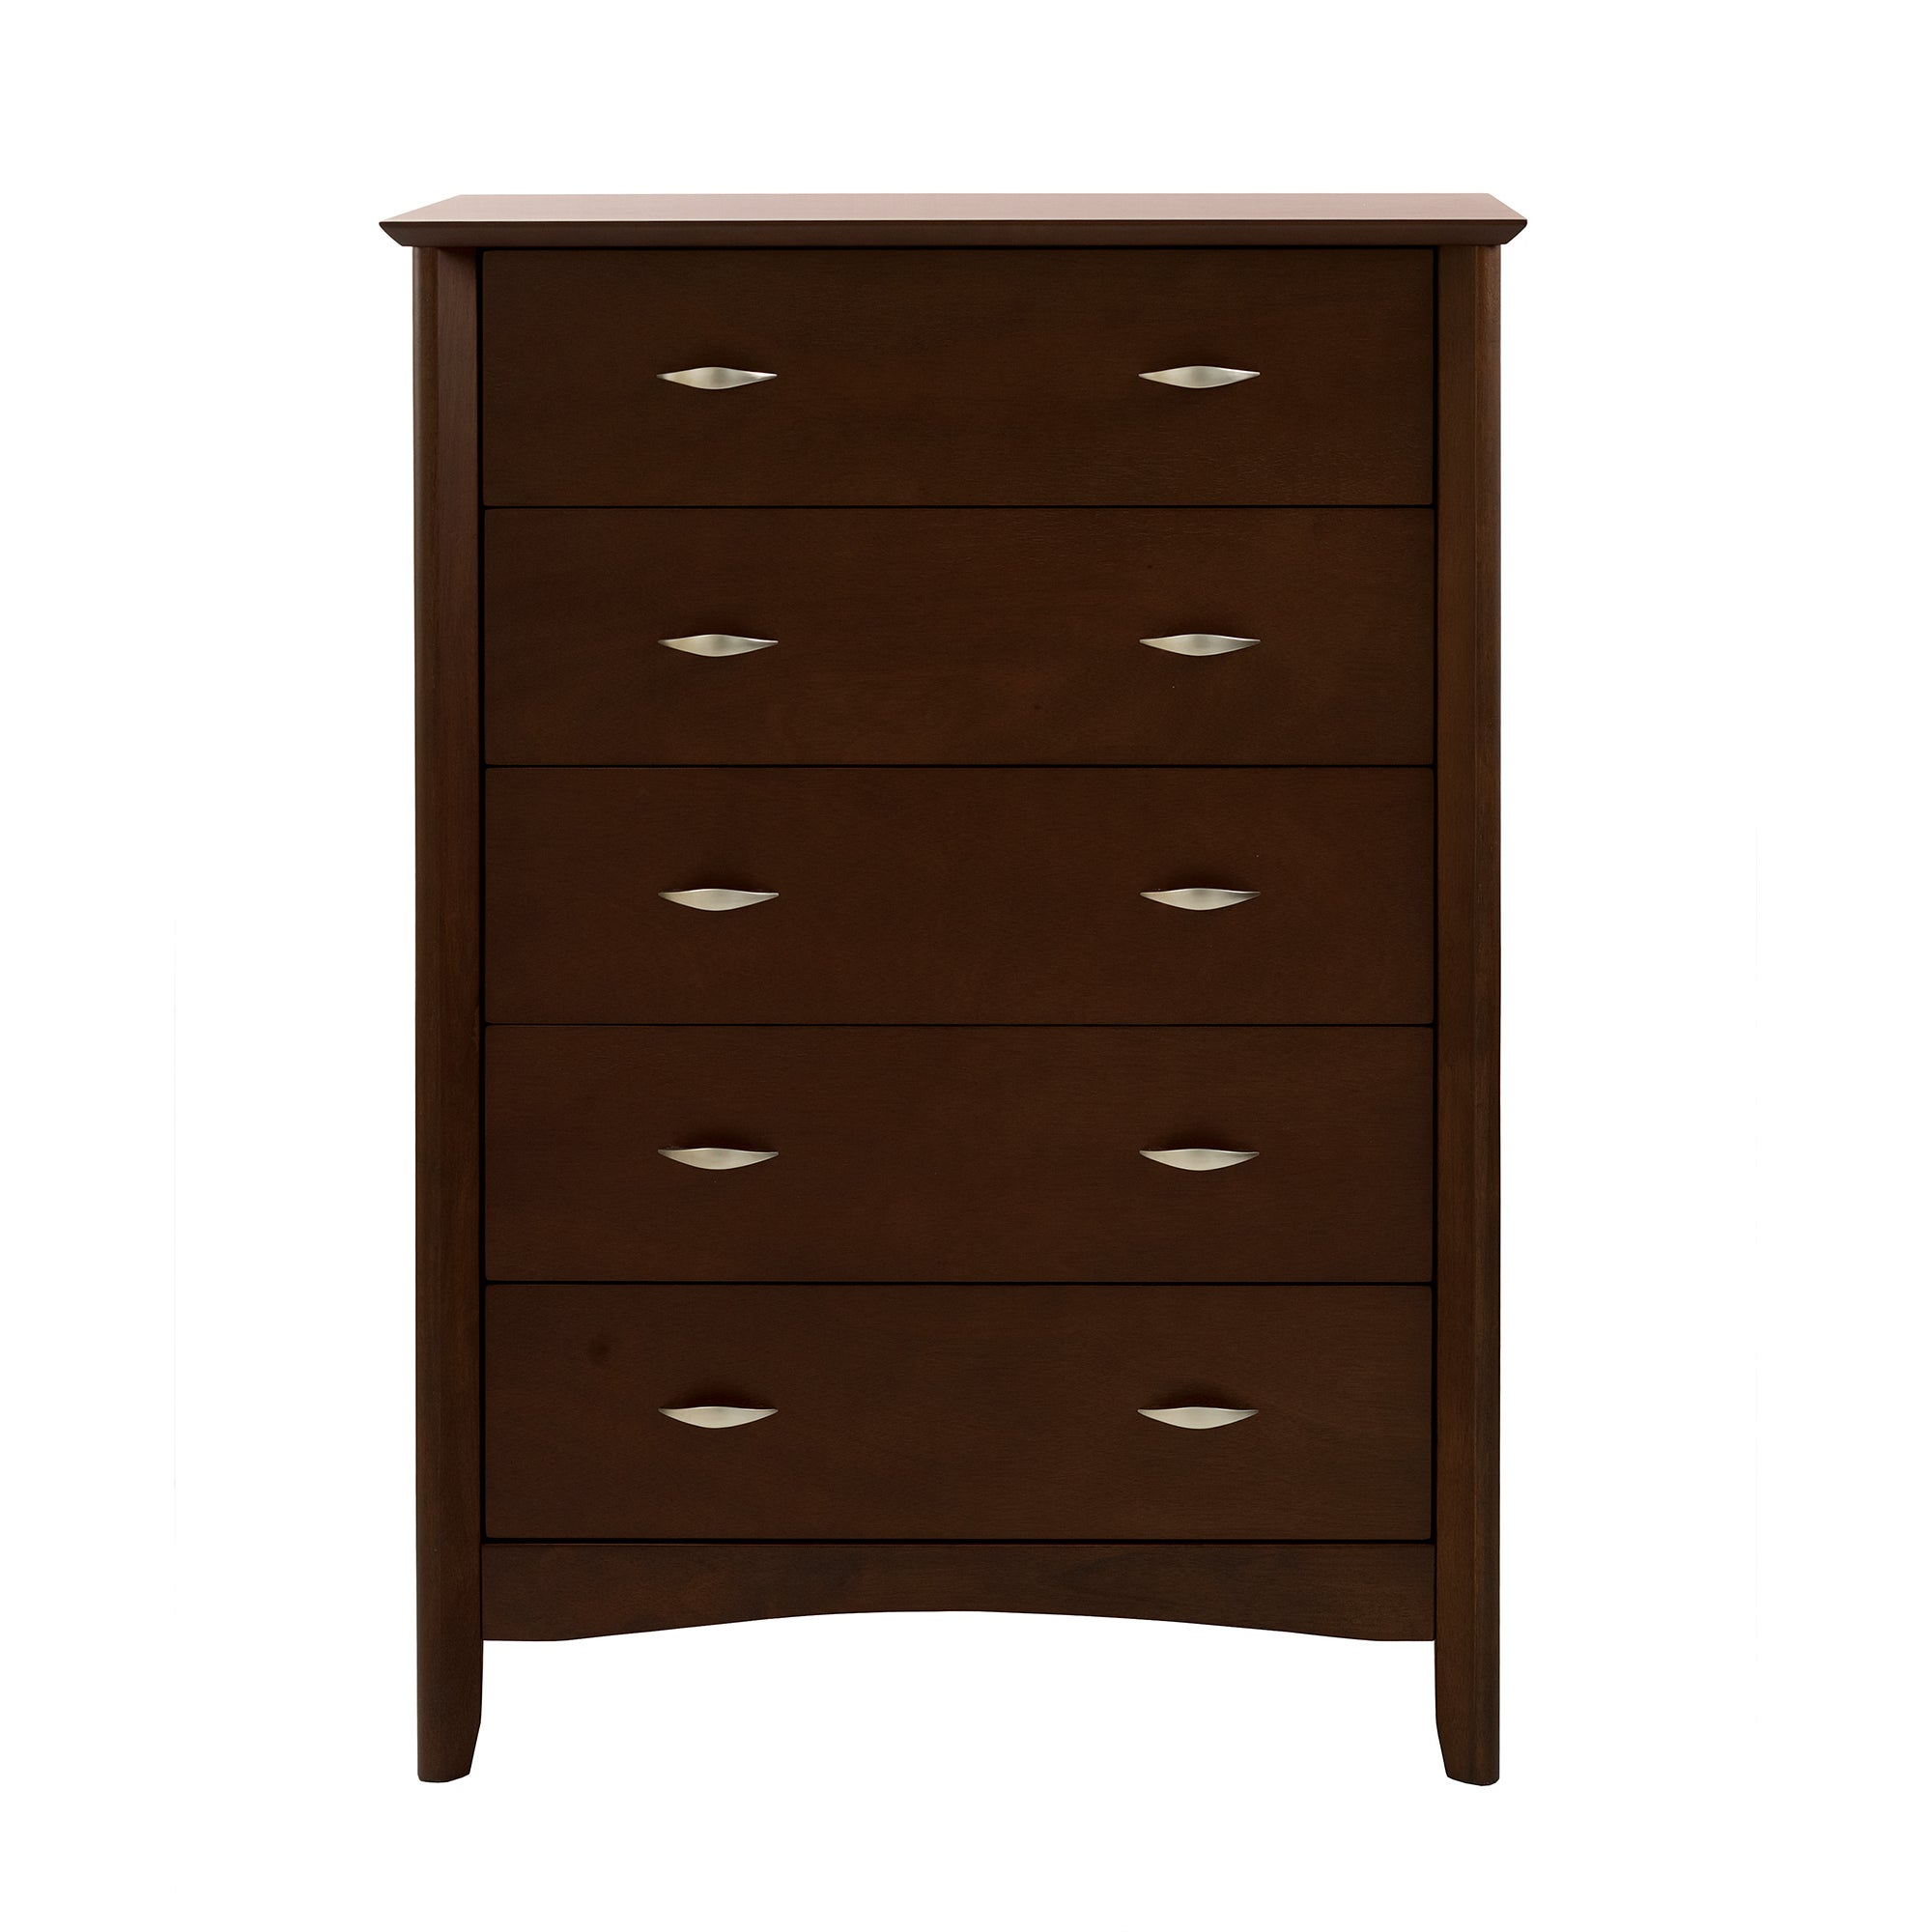 Monet Dark Wood 5 Drawer Chest